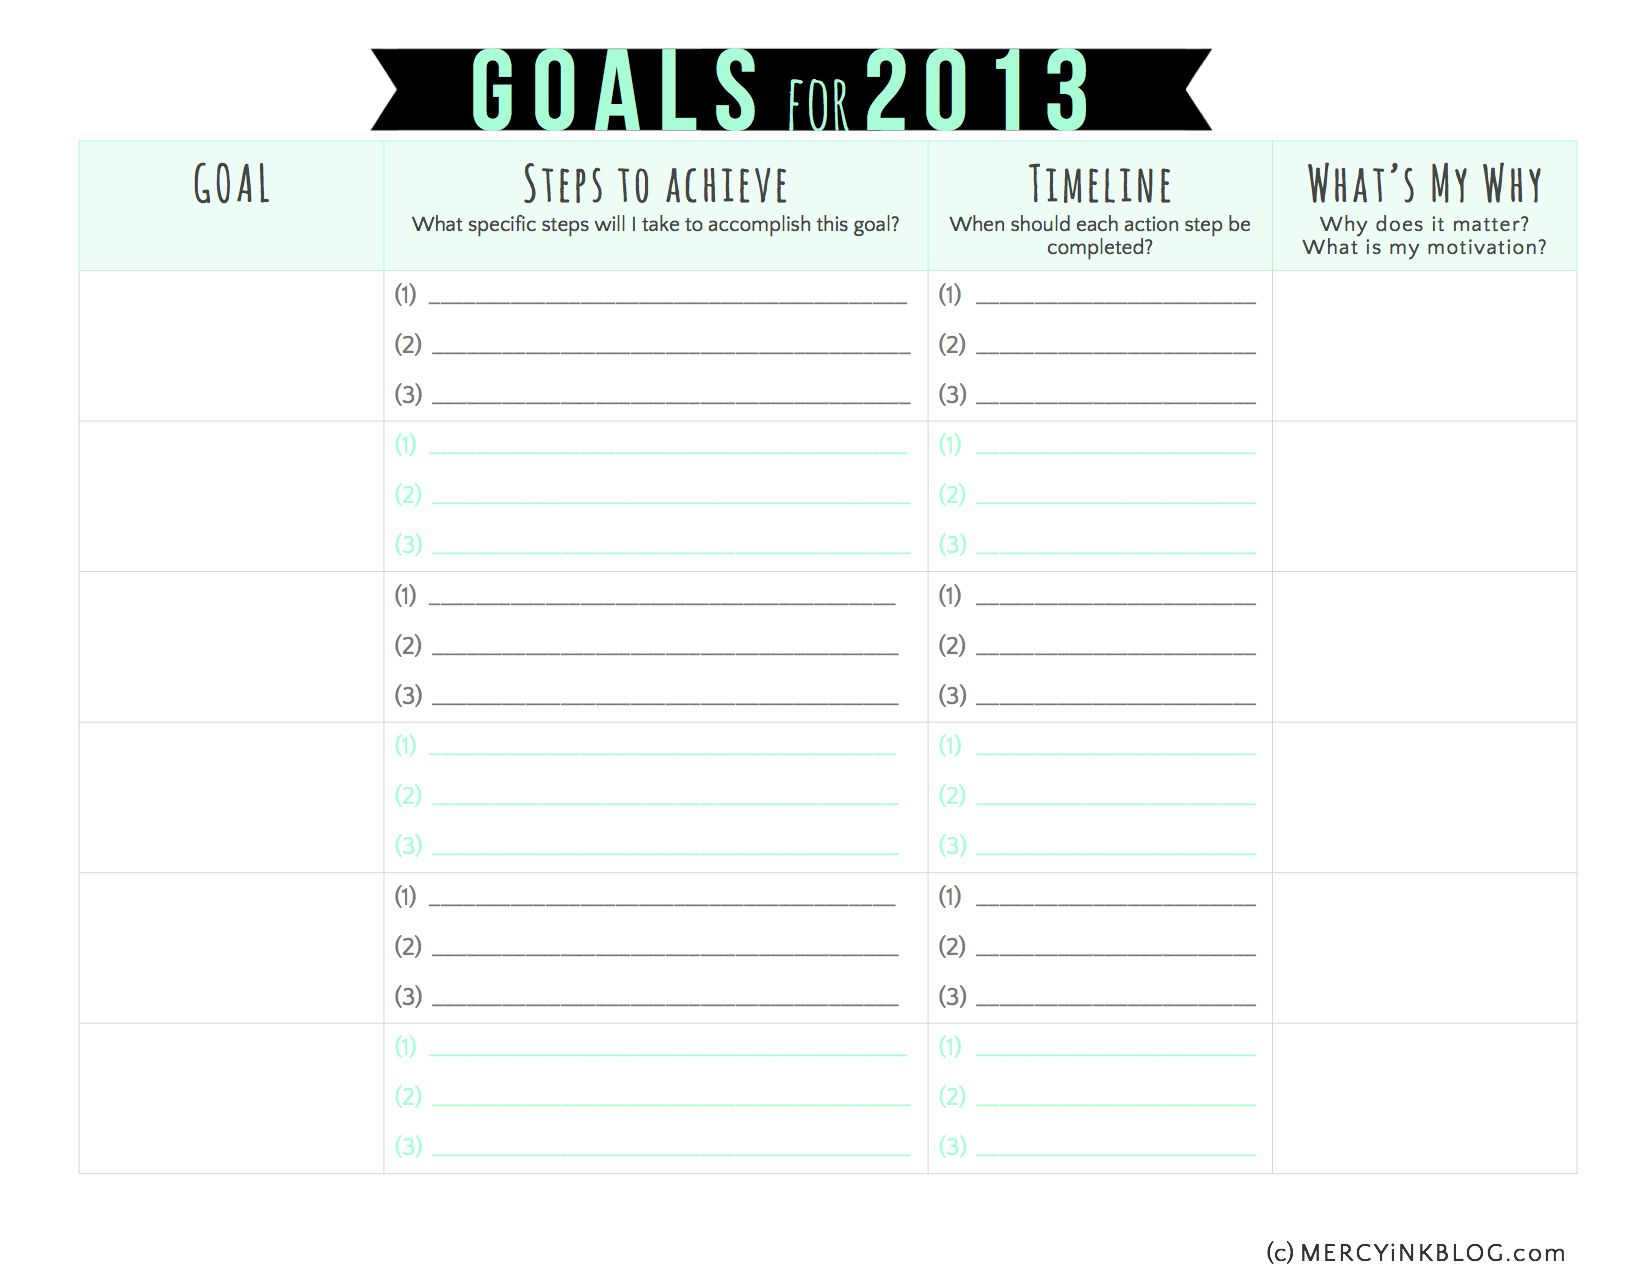 Worksheets Free Goal Setting Worksheet vision and goal setting in 2013 free printable planning worksheet